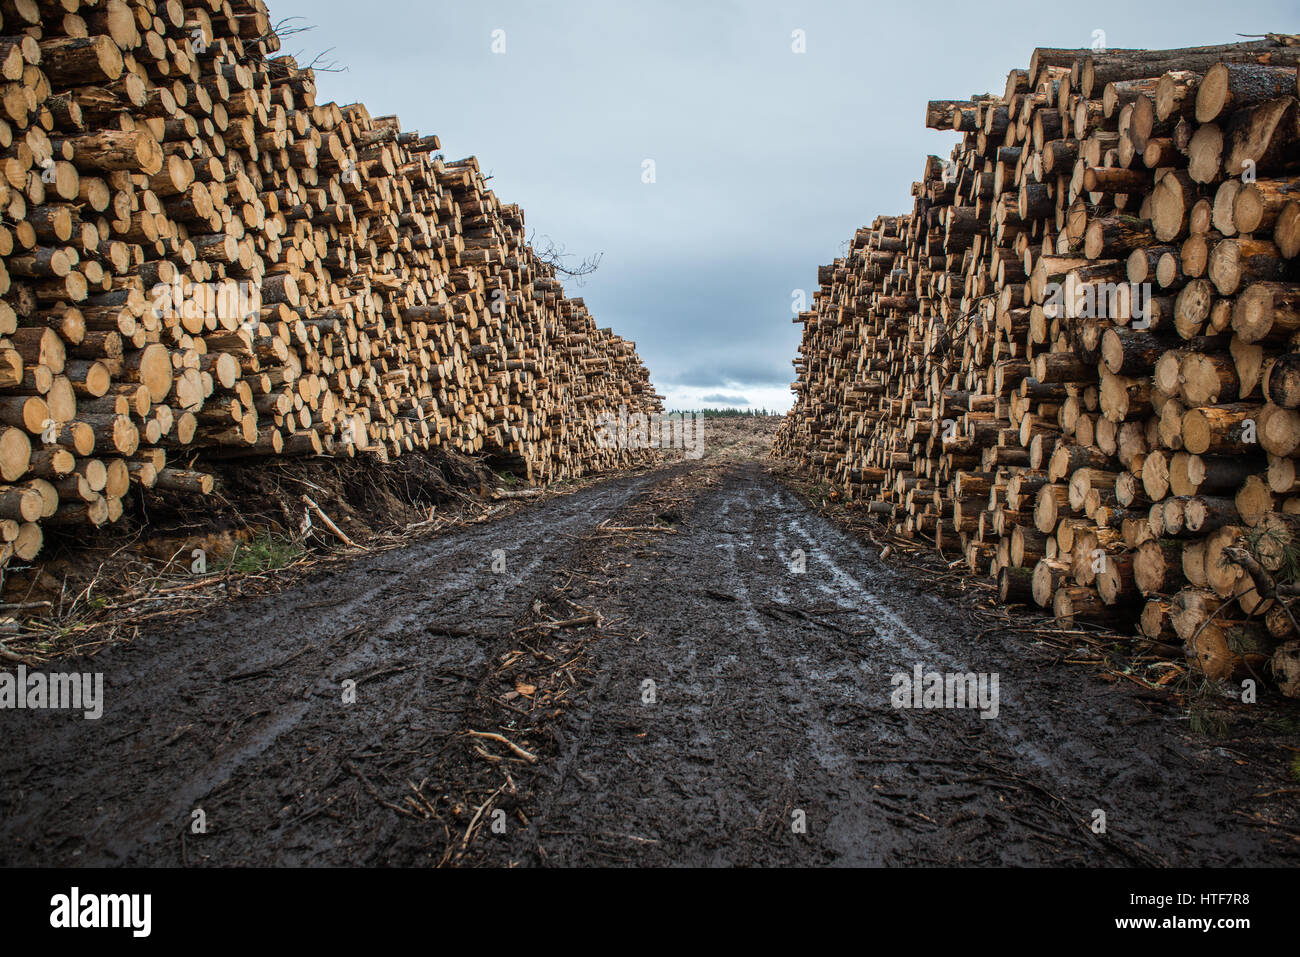 Large timber stacks sit at the road side ready for hauling, following forestry operations near Inverness in Scotland. - Stock Image